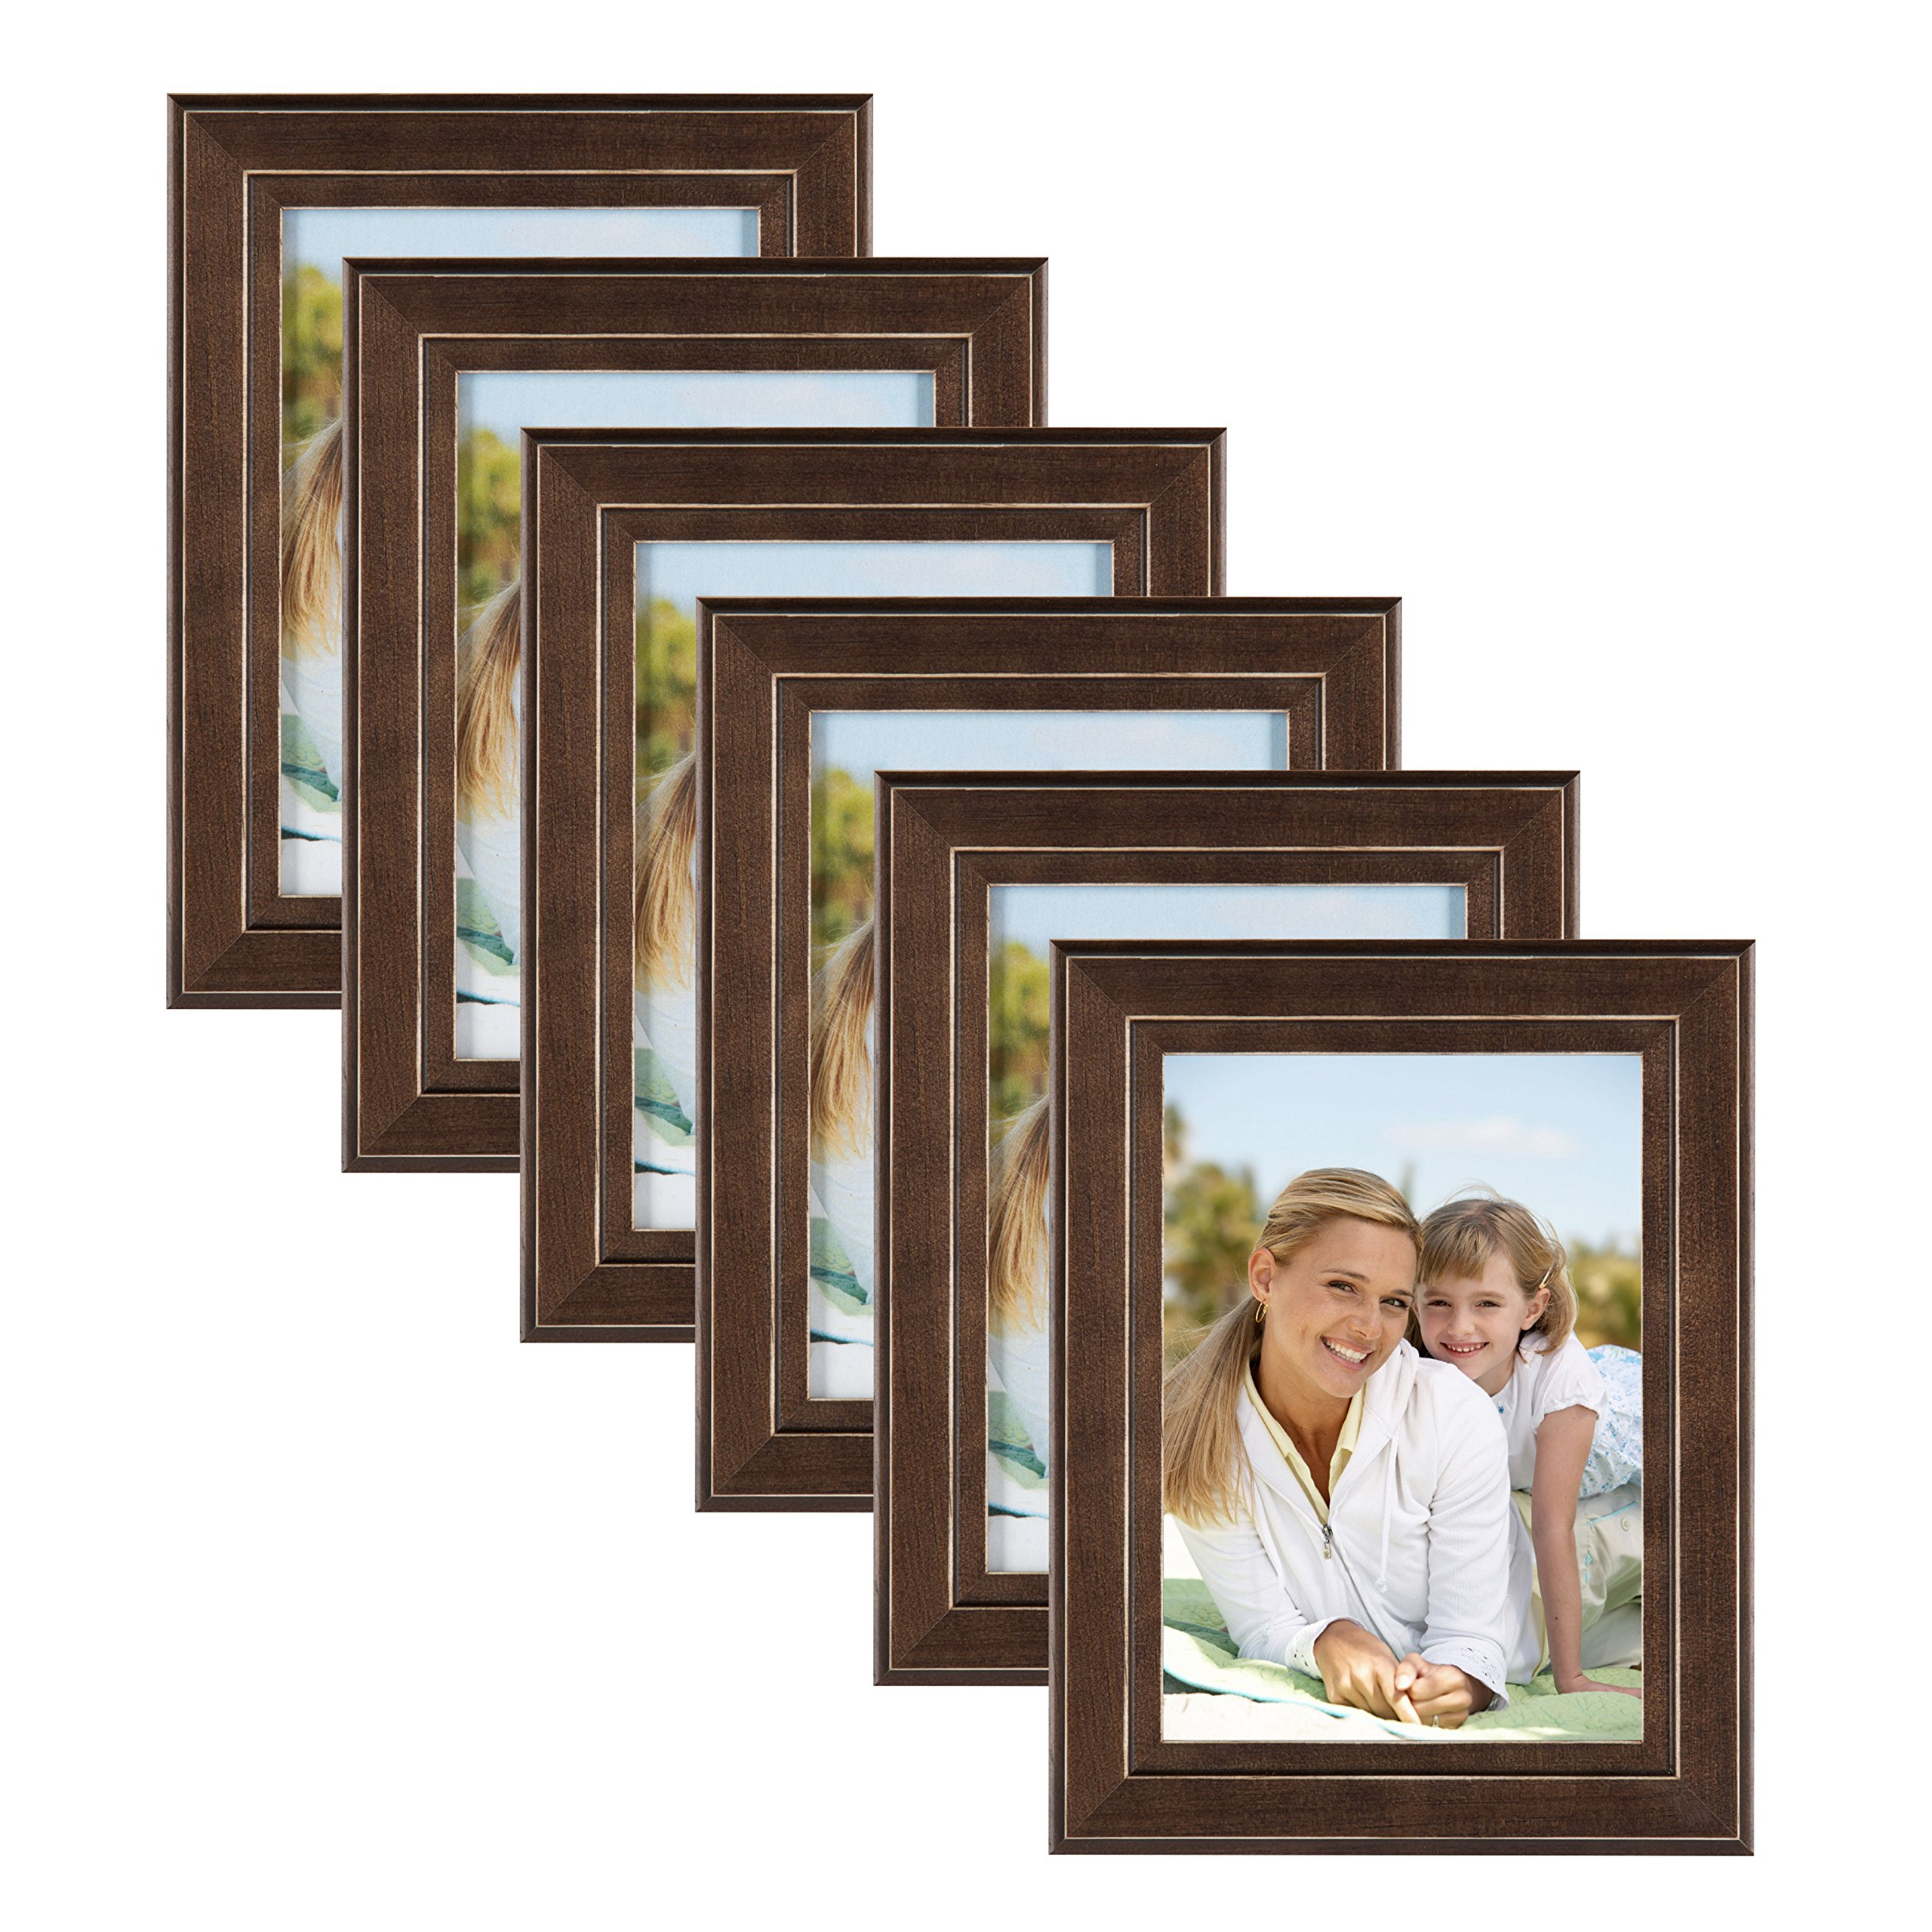 DesignOvation Kieva Solid Wood Picture Frame, Distressed Espresso Brown 5x7, Pack of 6